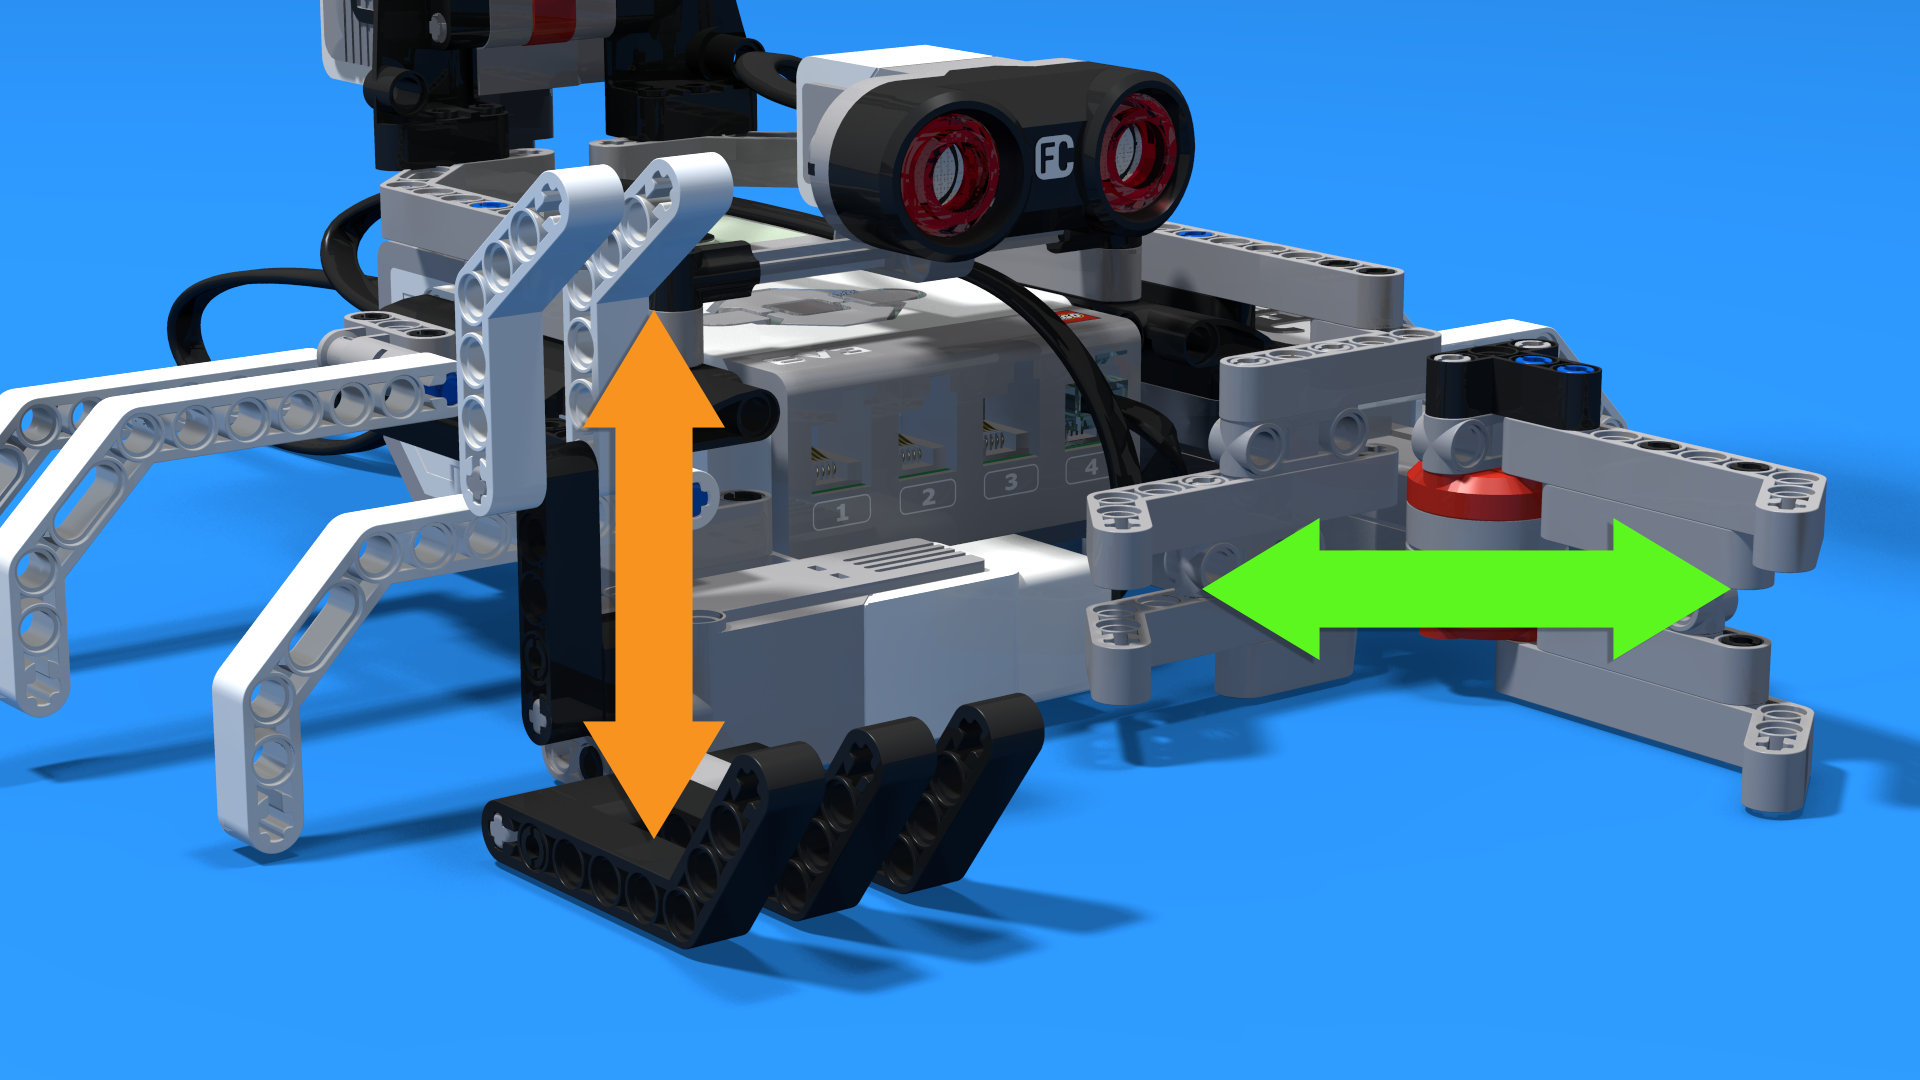 LEGO-Mindstorms-Ev3-Scorpion-Claws-With-Arrows-Fllcasts